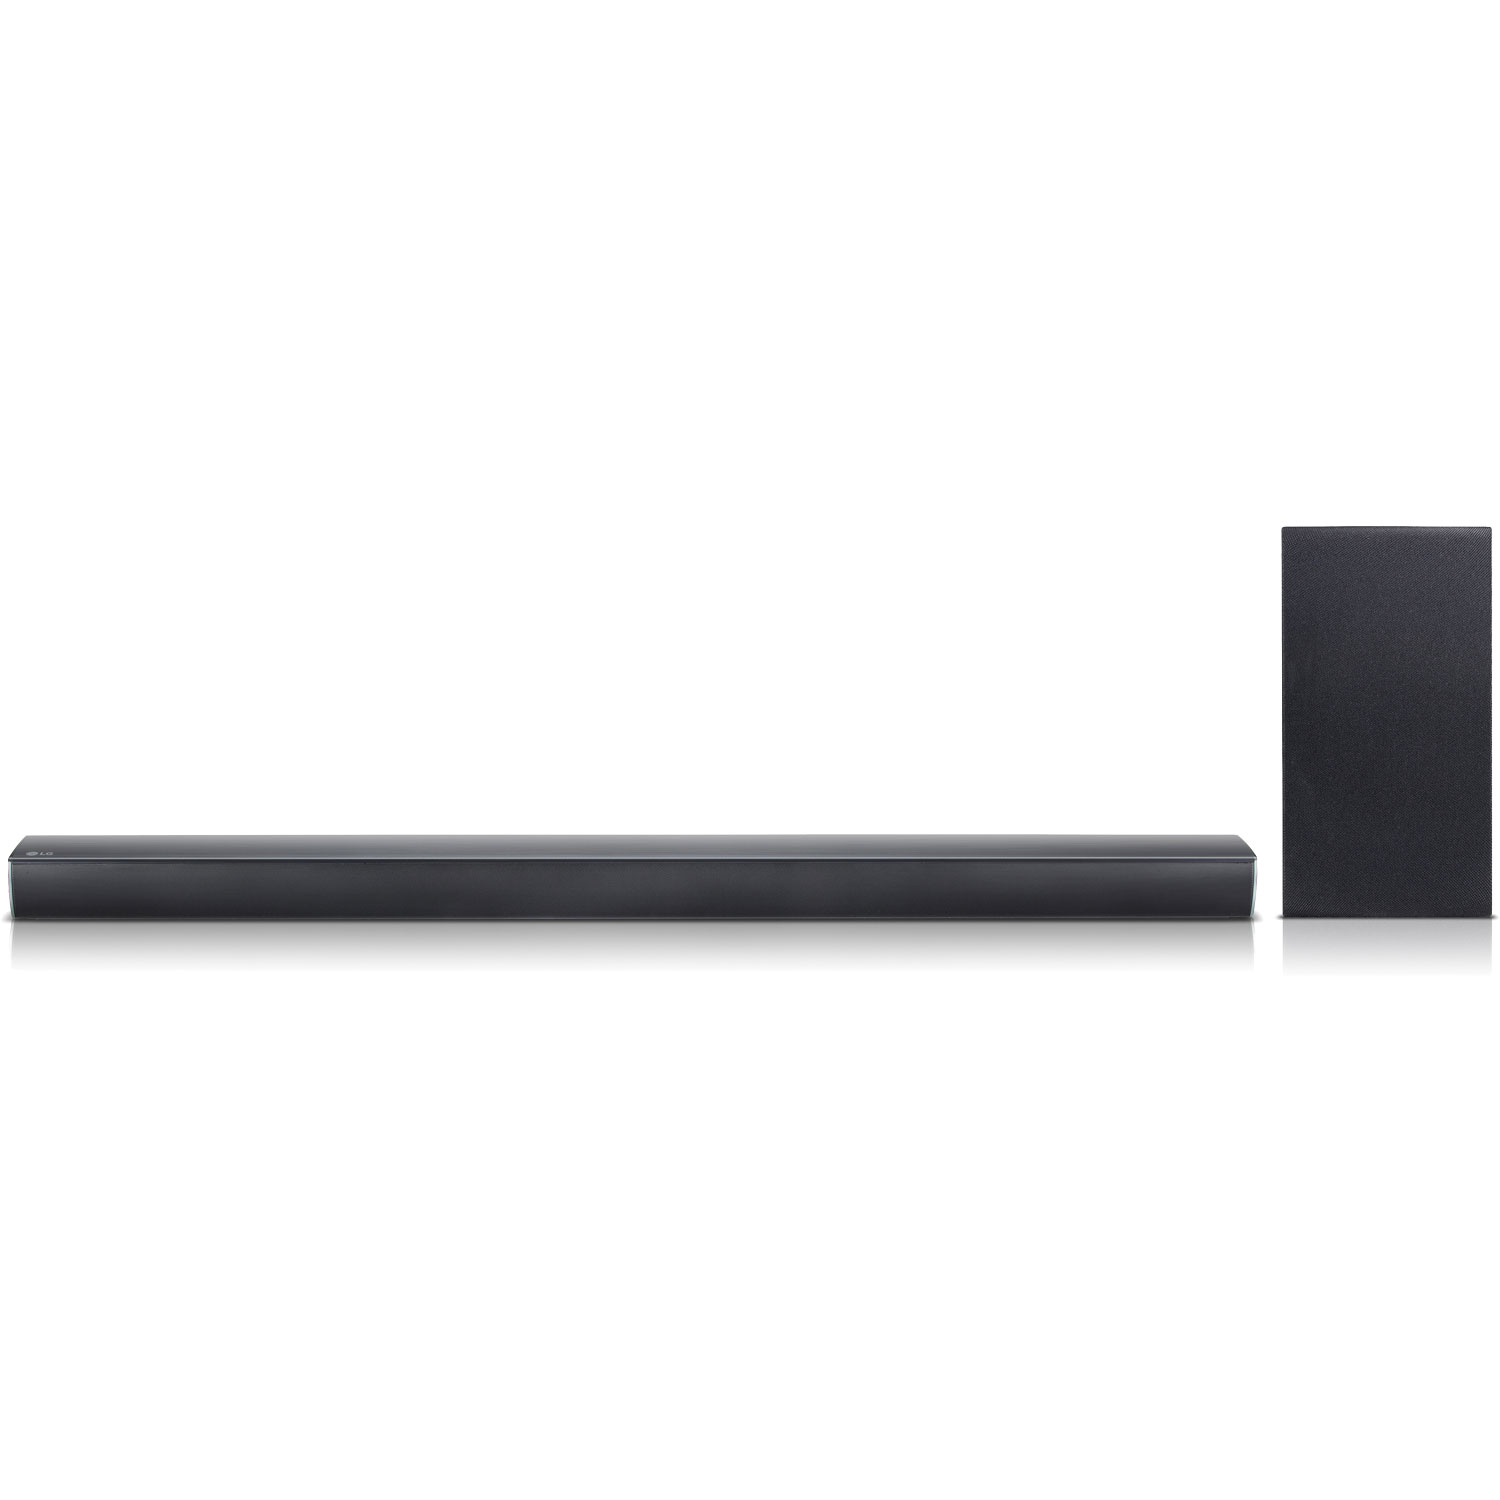 LG SJ4Y 2.1-Ch Soundbar with Wireless Subwoofer